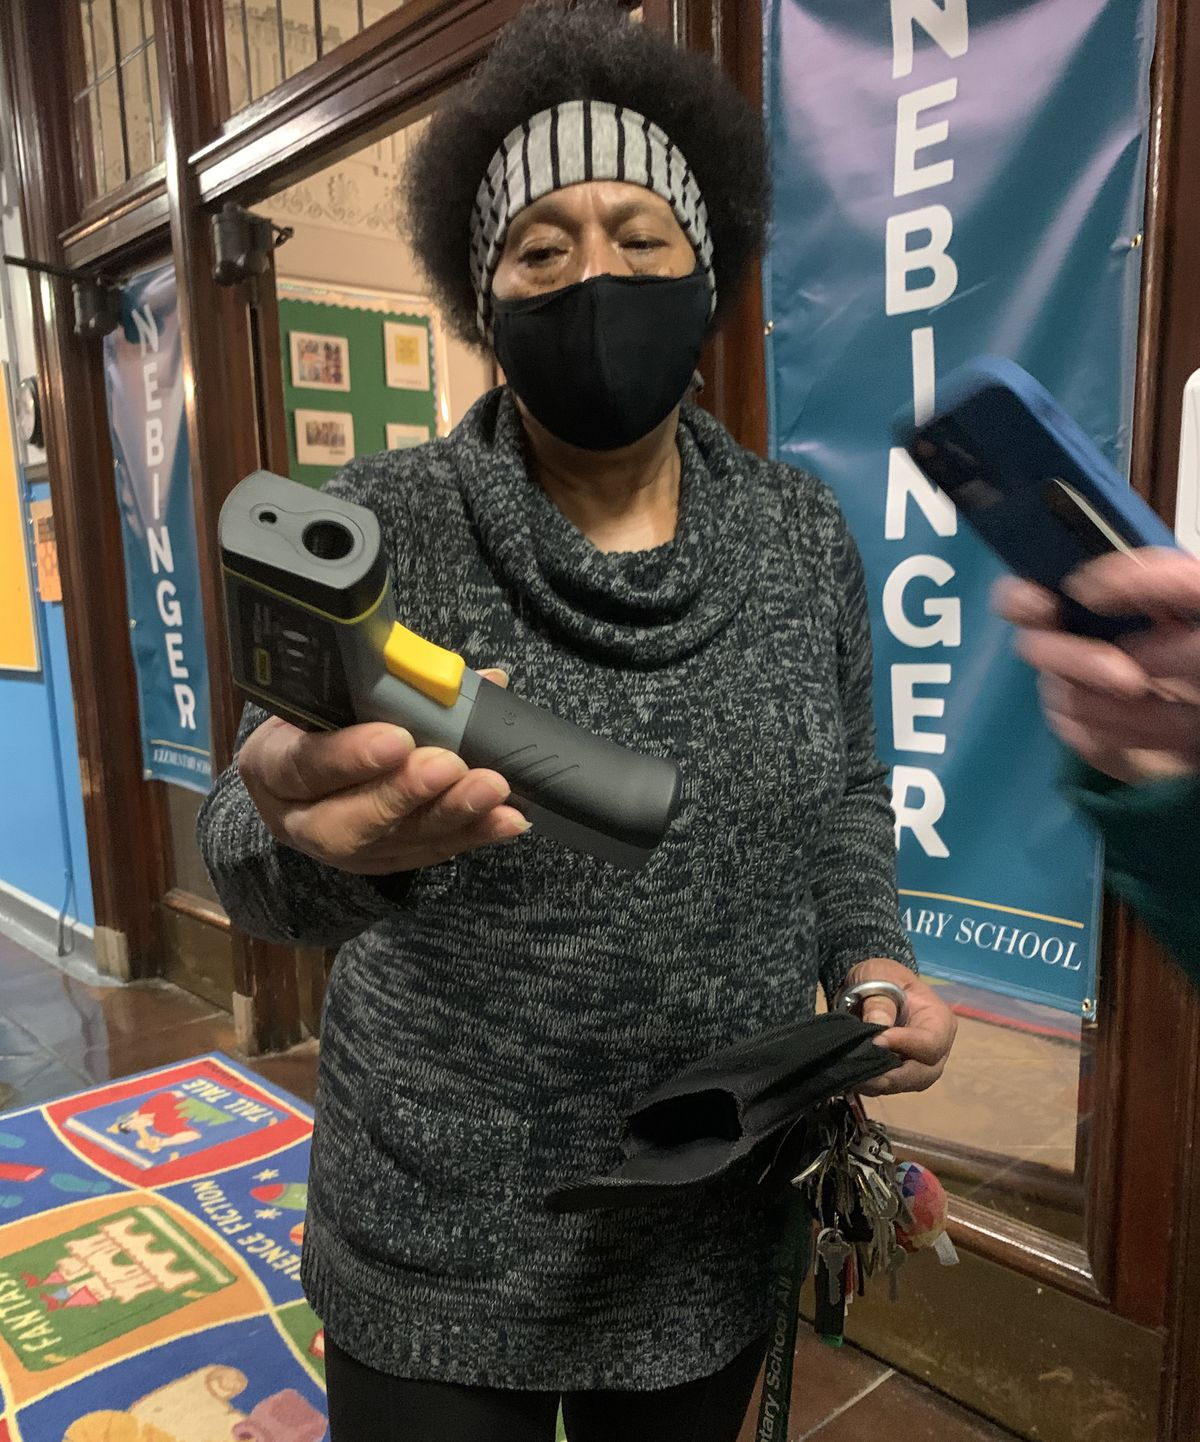 Building engineer Joan Terrell shows off the device used to measure temperatures in classrooms with fans.